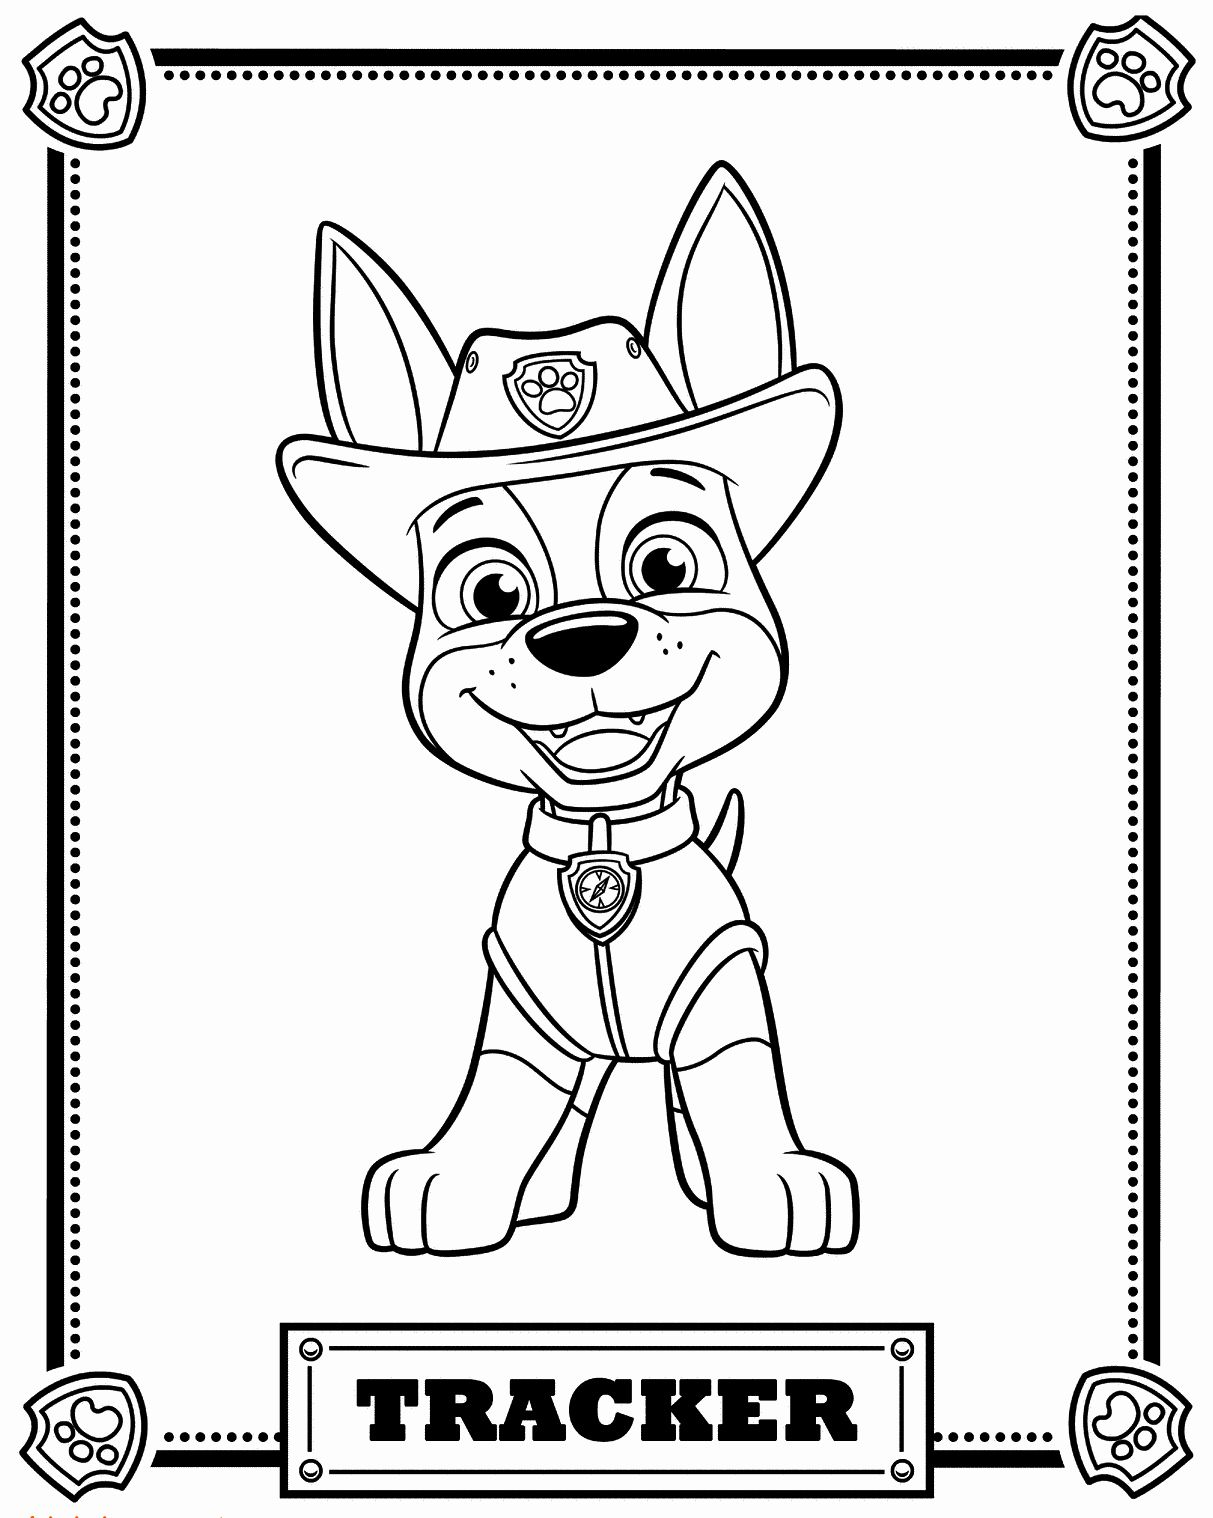 paw patrol characters how to draw marshal paw patrol patrol characters paw